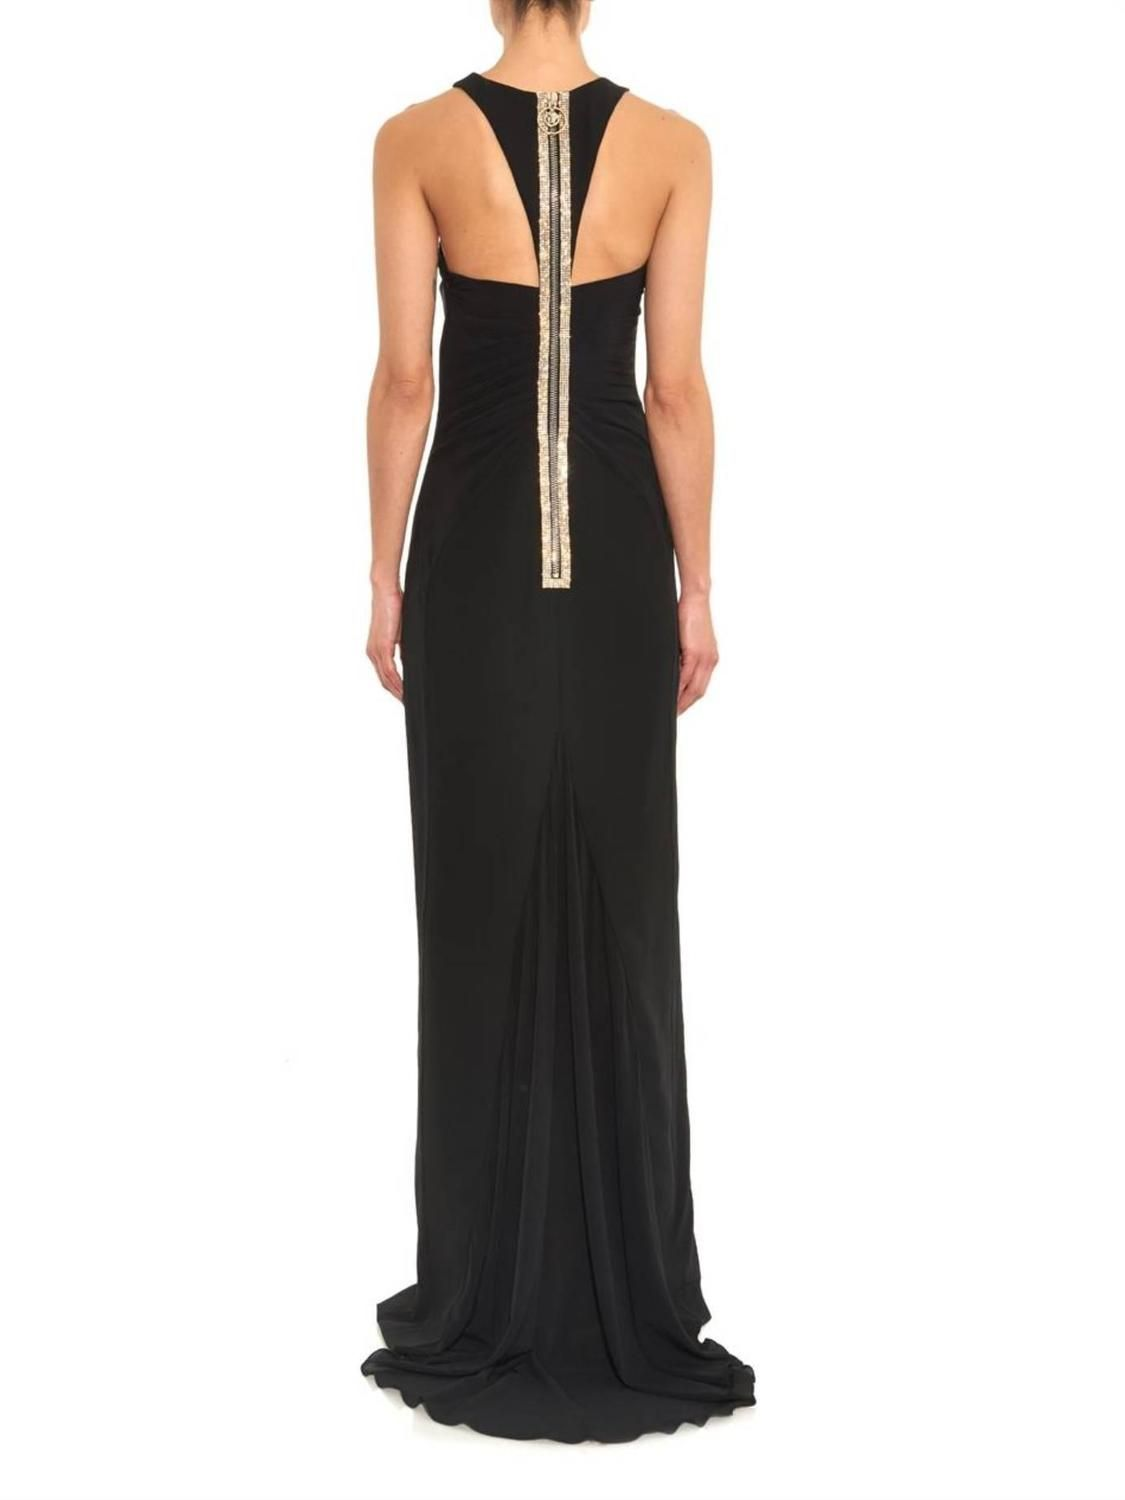 e62bb293 Versace Black Crystal-Embellished Silk Gown | WOMEN'S FASHION STYLE ...